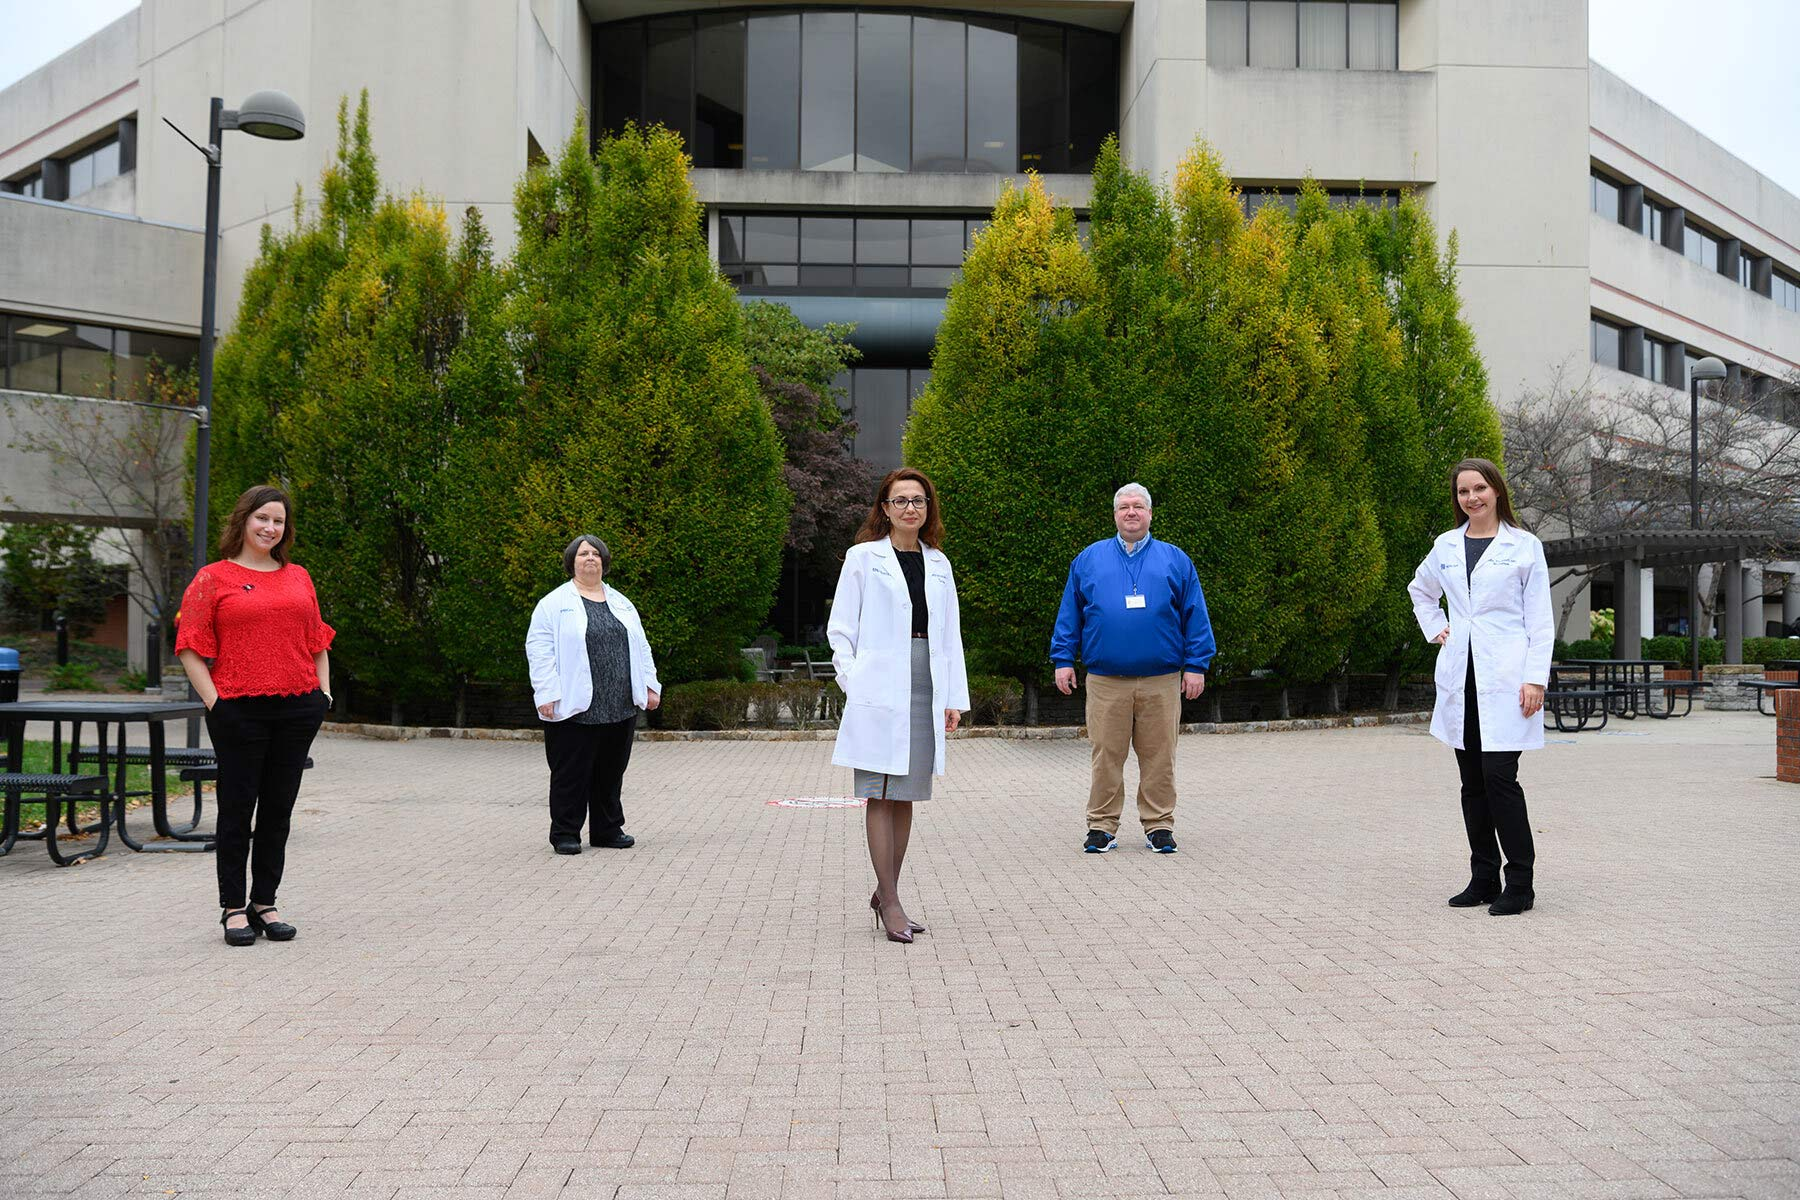 Dr. Meriem Bensalem-Owen, a middle-aged white woman with red hair, stands in an outside setting area with two of her colleagues: a middle-aged white man and an elderly white woman. Dr. Bensalem-Owen is wearing a white doctor's coat, a grey skirt and black framed glasses with a black blouse.